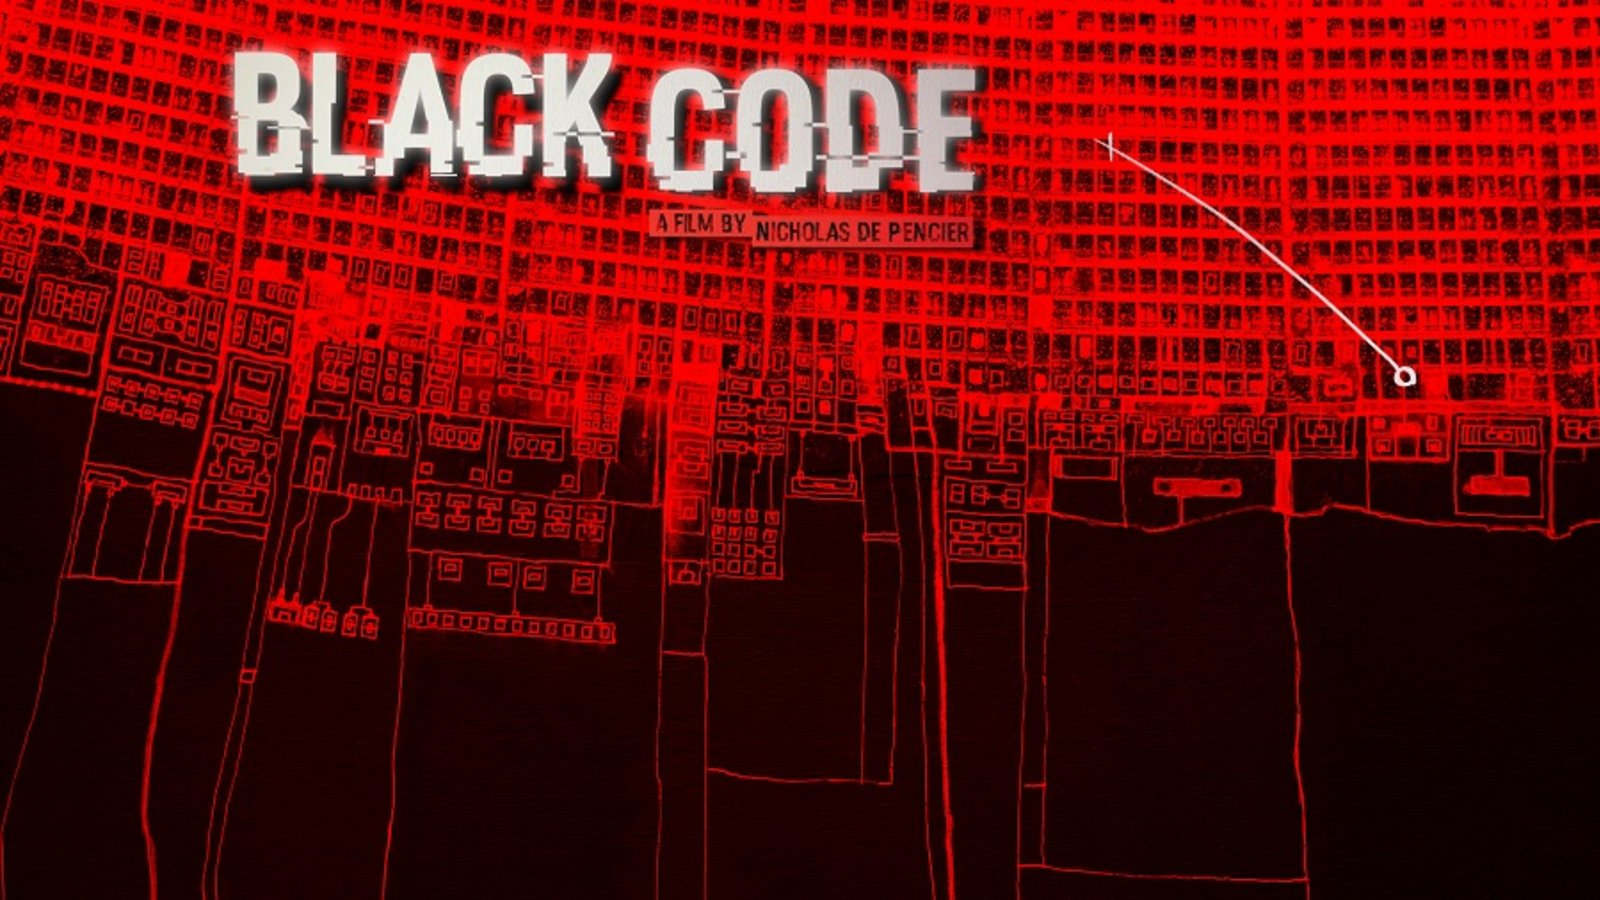 Black Code - Where Big Data Meets Big Brother